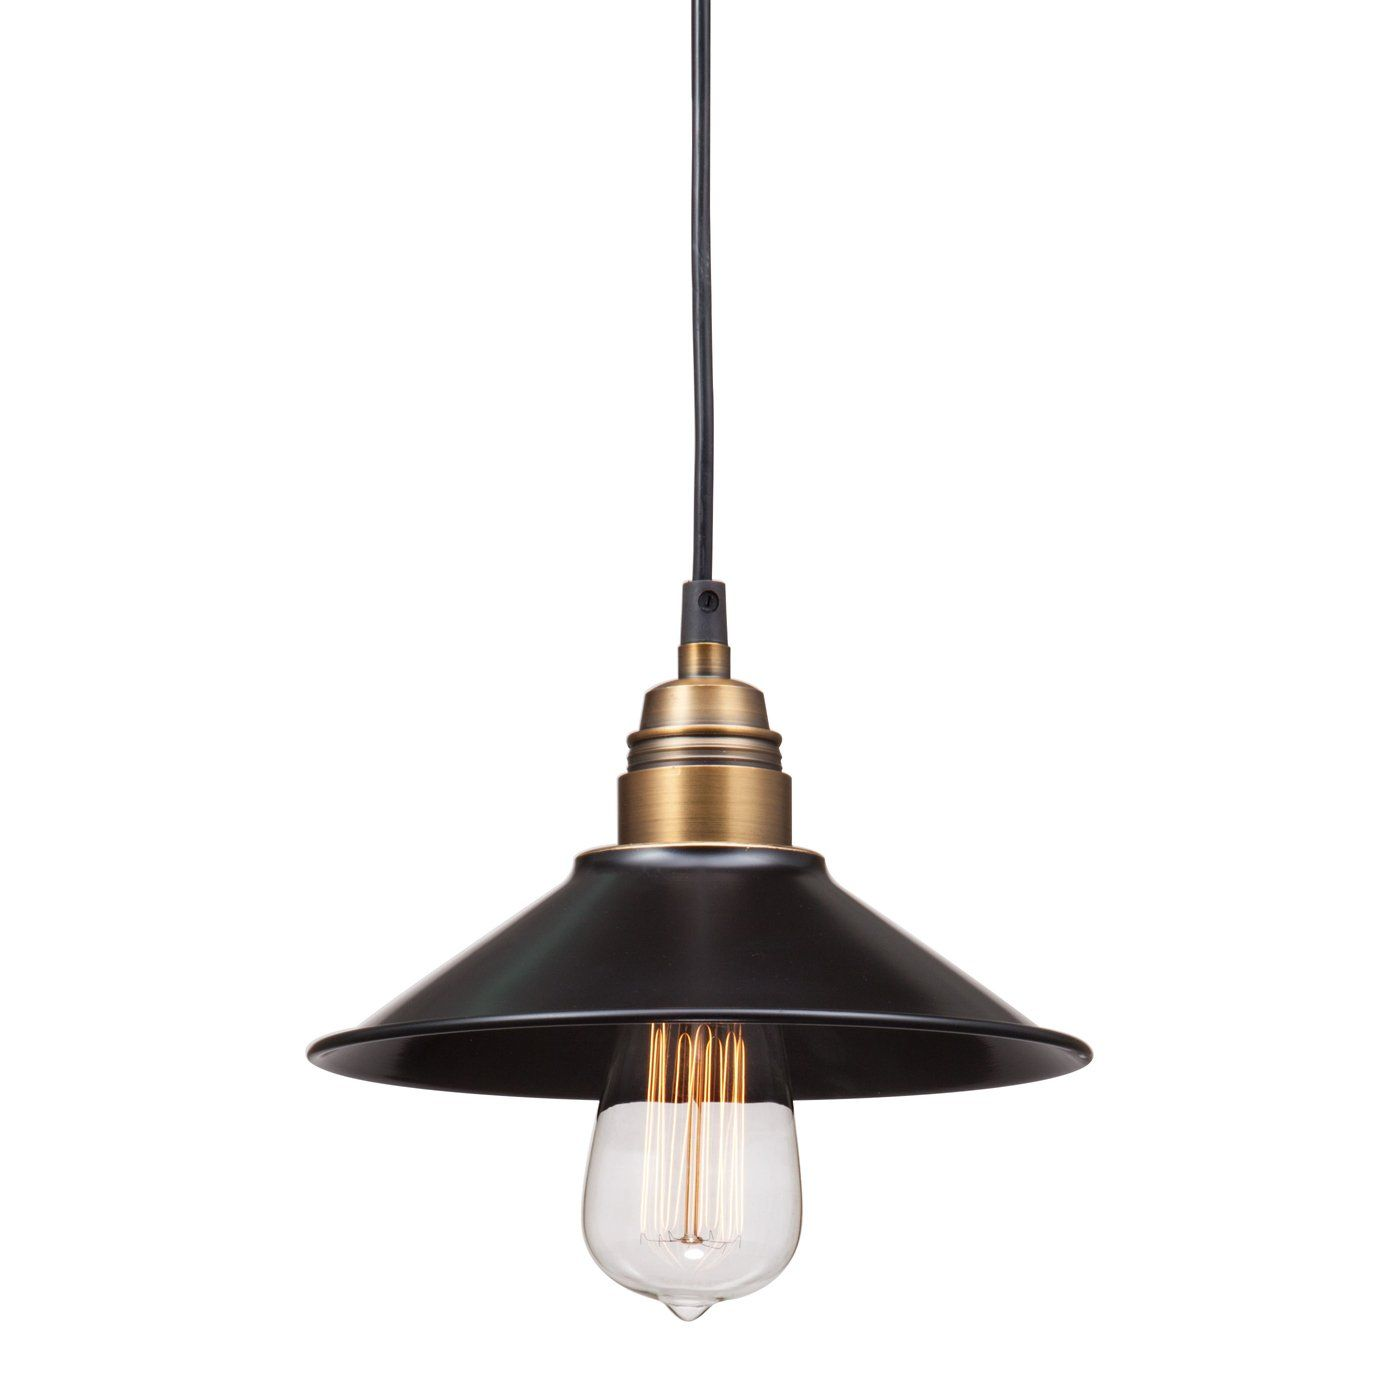 Zuo Modern Lighting Canada Zuo Modern 98257 Amarillite Ceiling Lamp Lowe S Canada